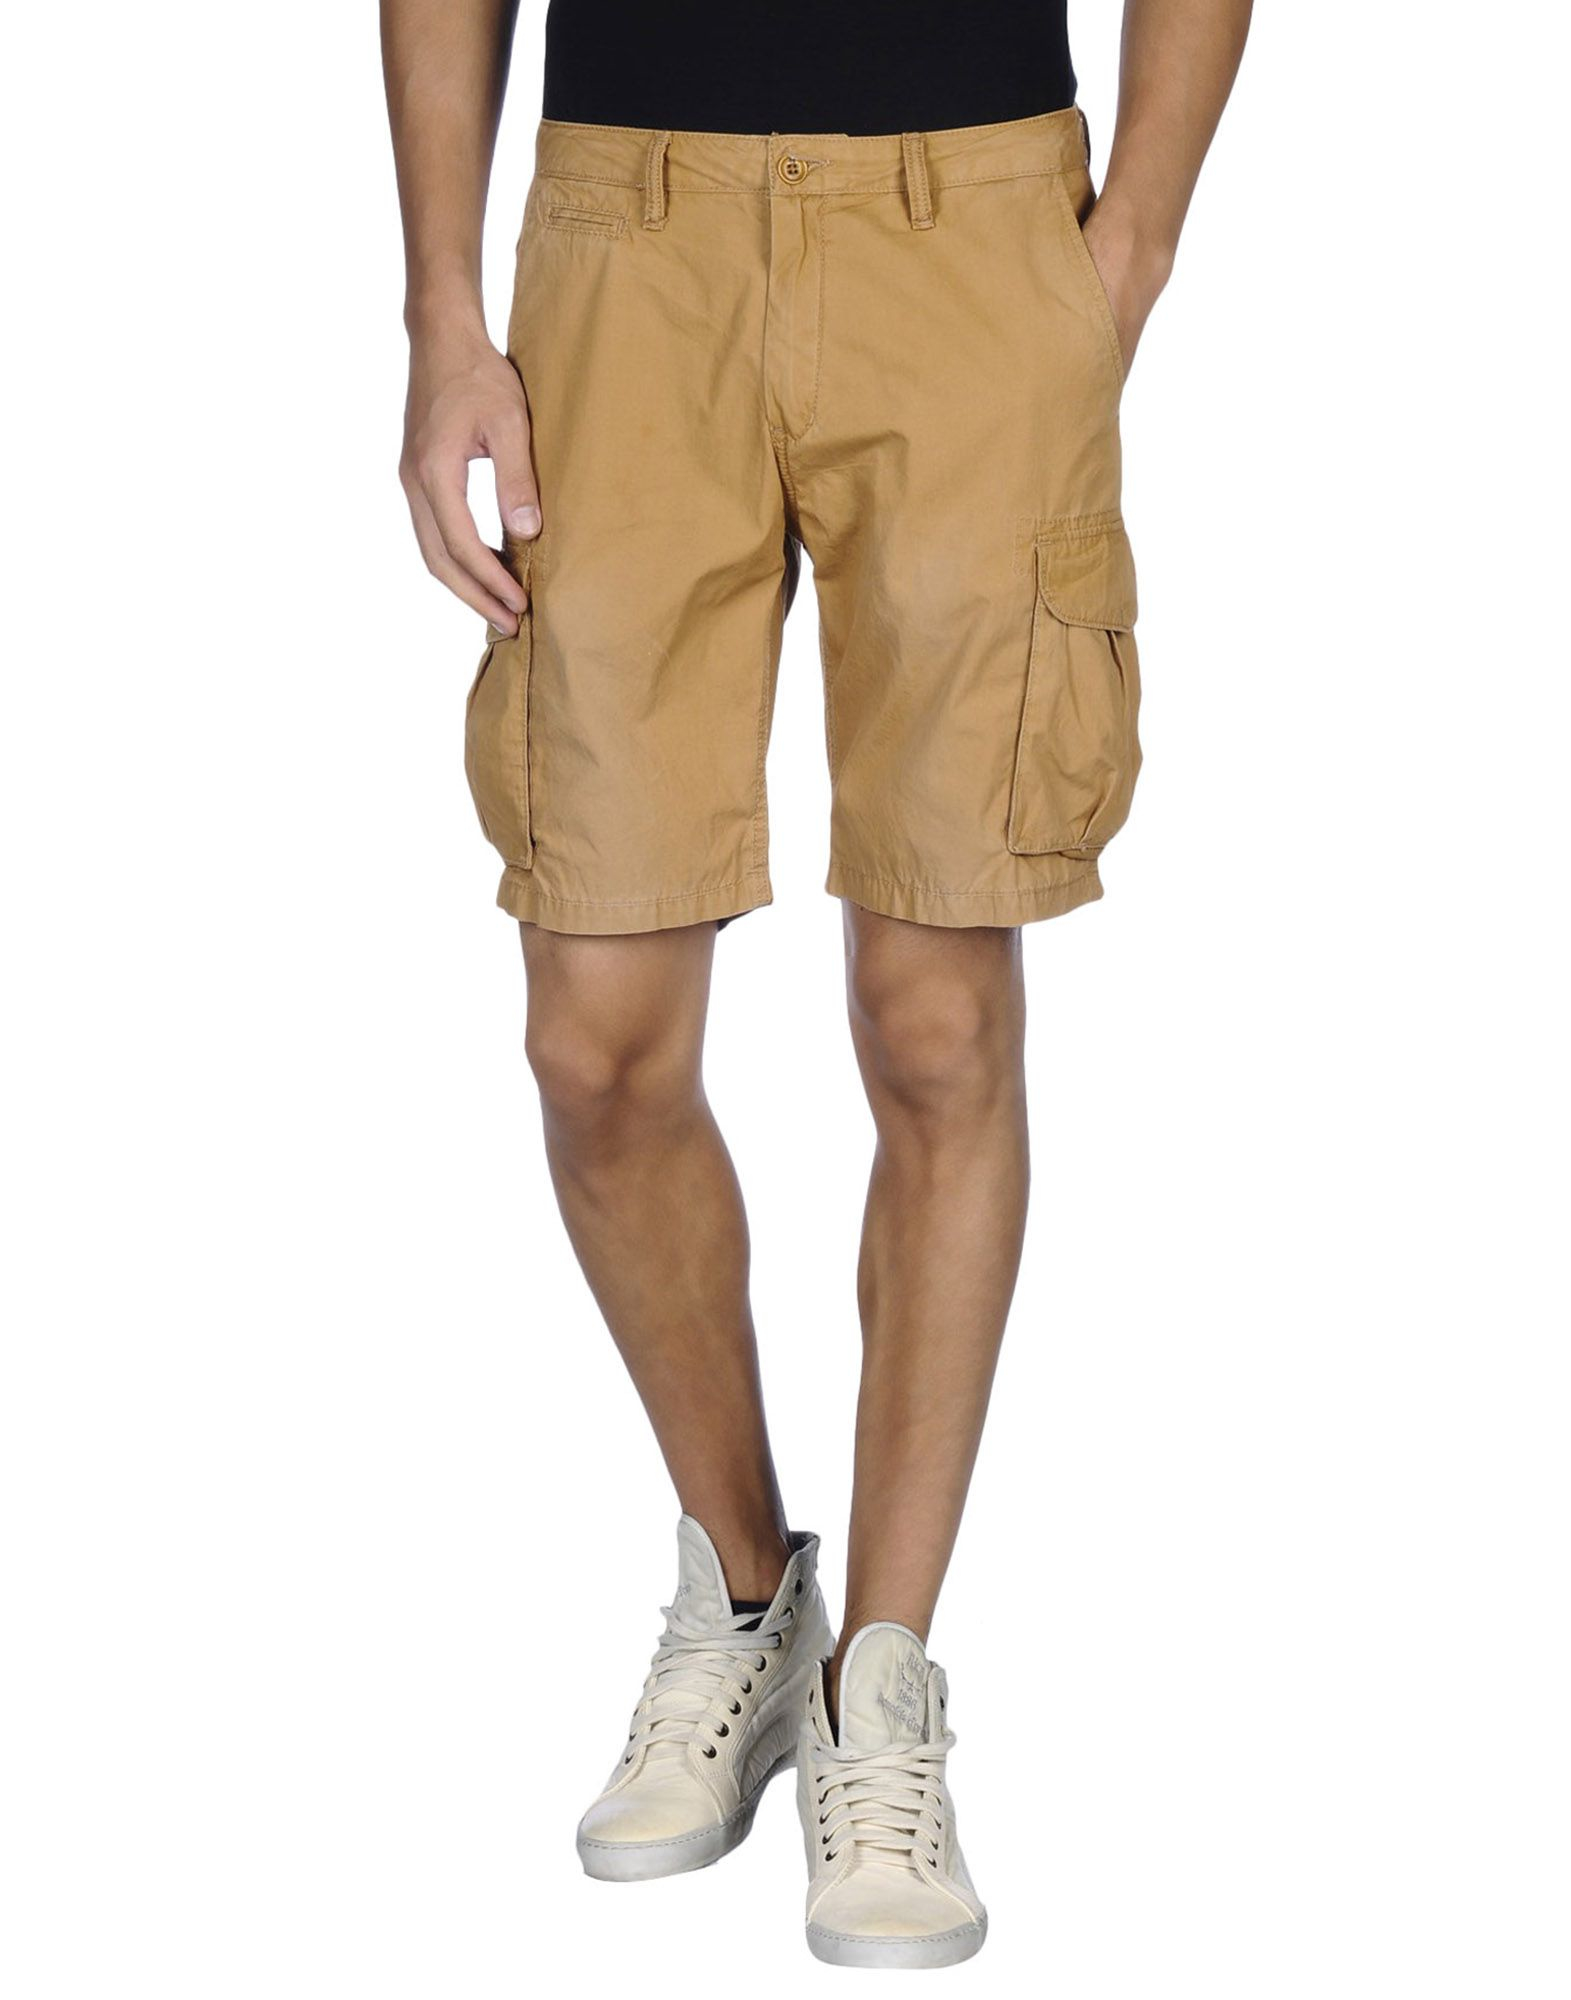 Shop Wrangler for our wide selection of durable & comfortable shorts for men -including cargo and carpenter styles.